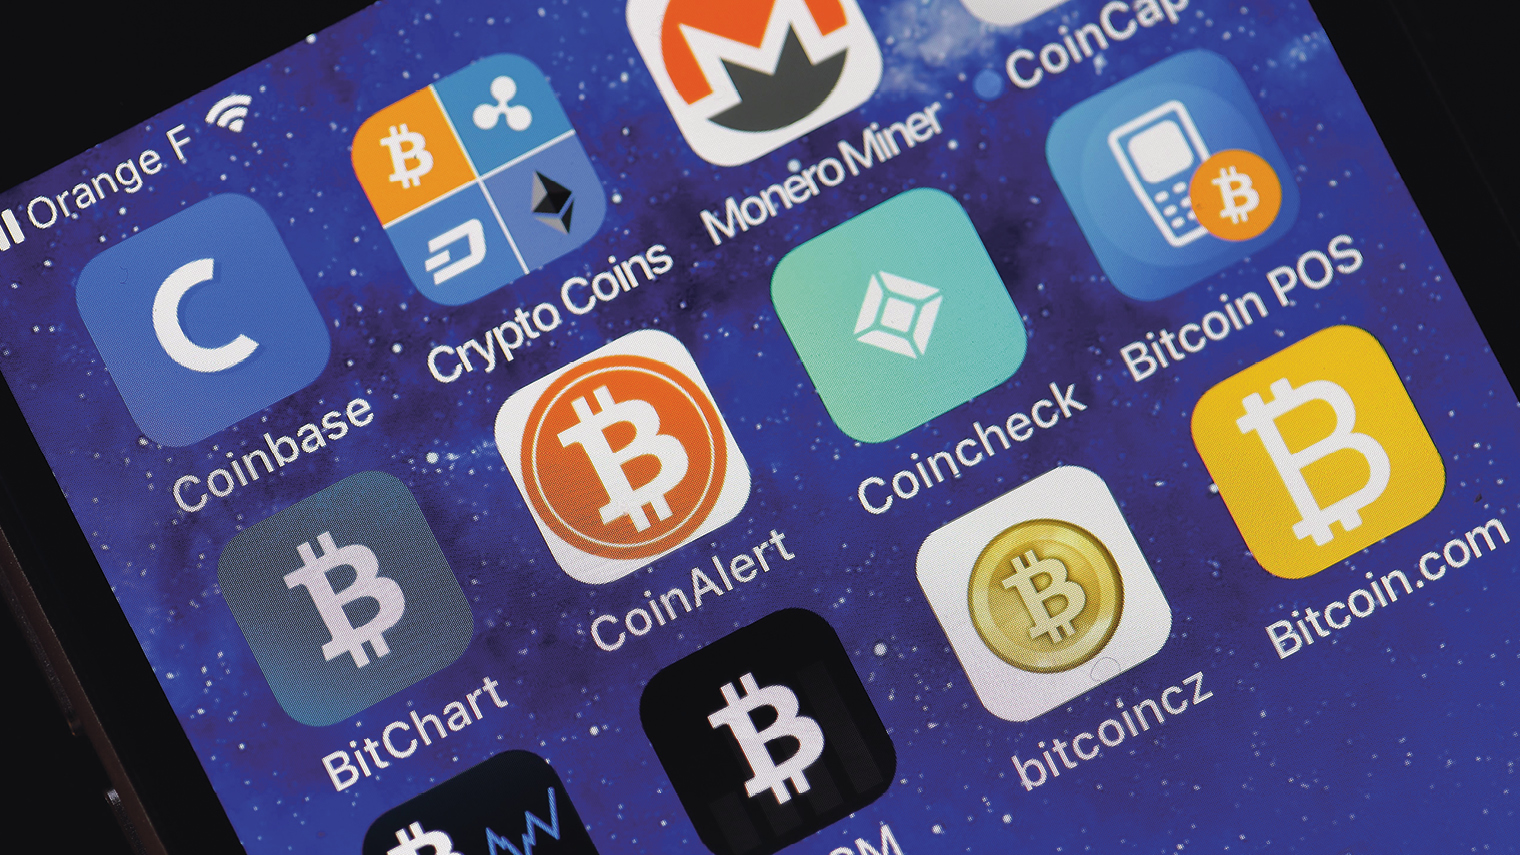 user experience on online cryptocurrency trading platforms